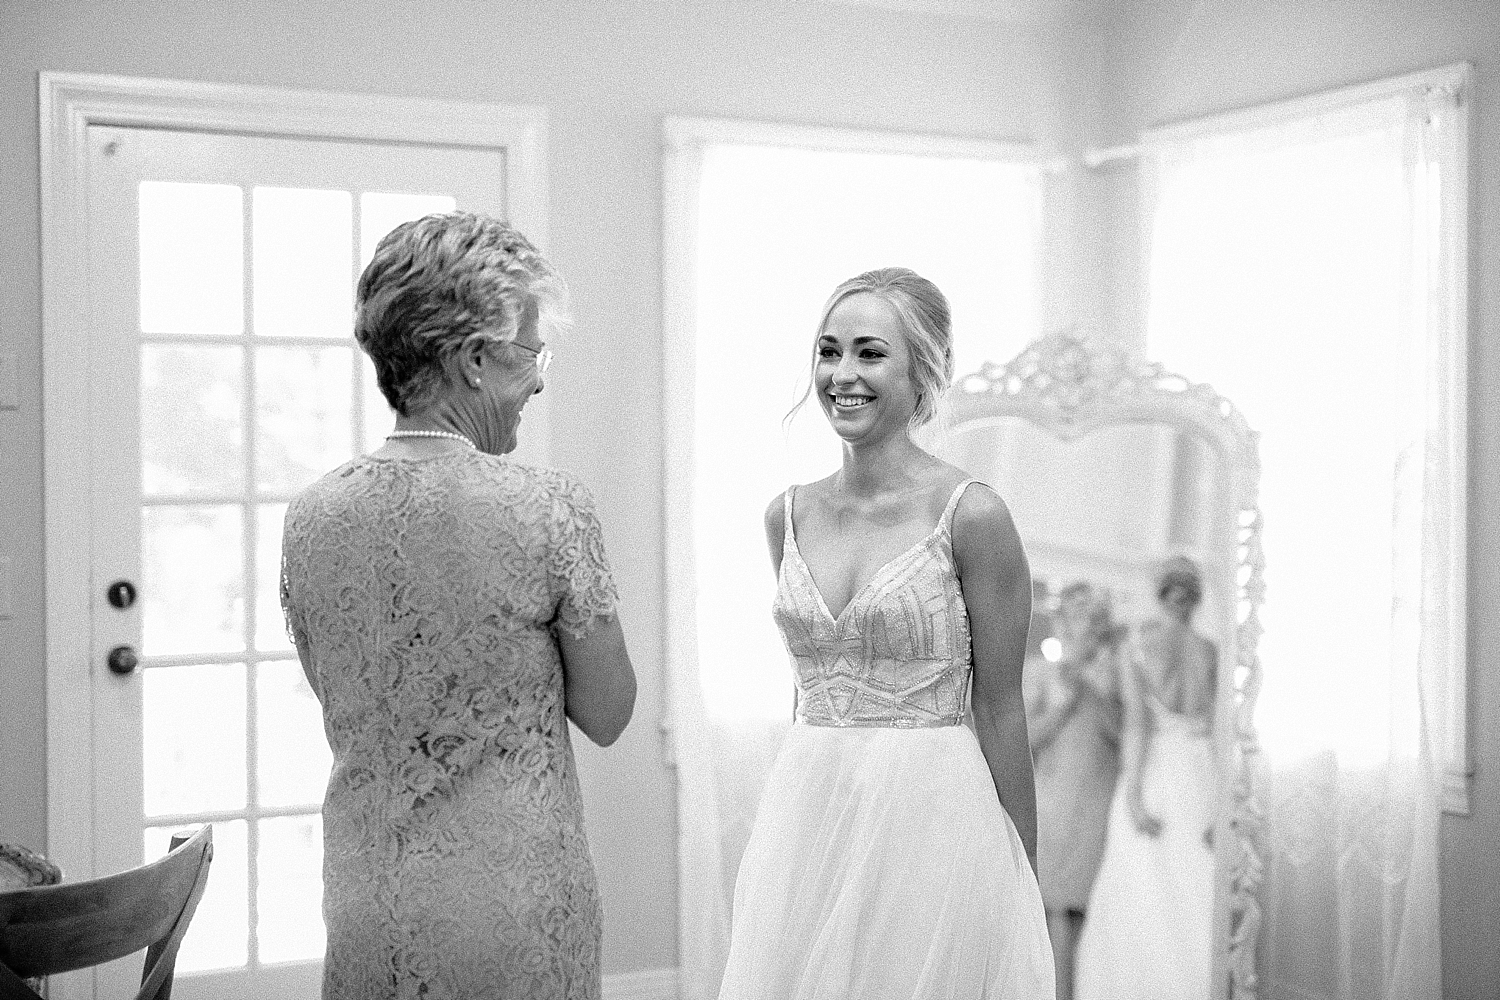 mother of the bride smiling at bride in her wedding dress